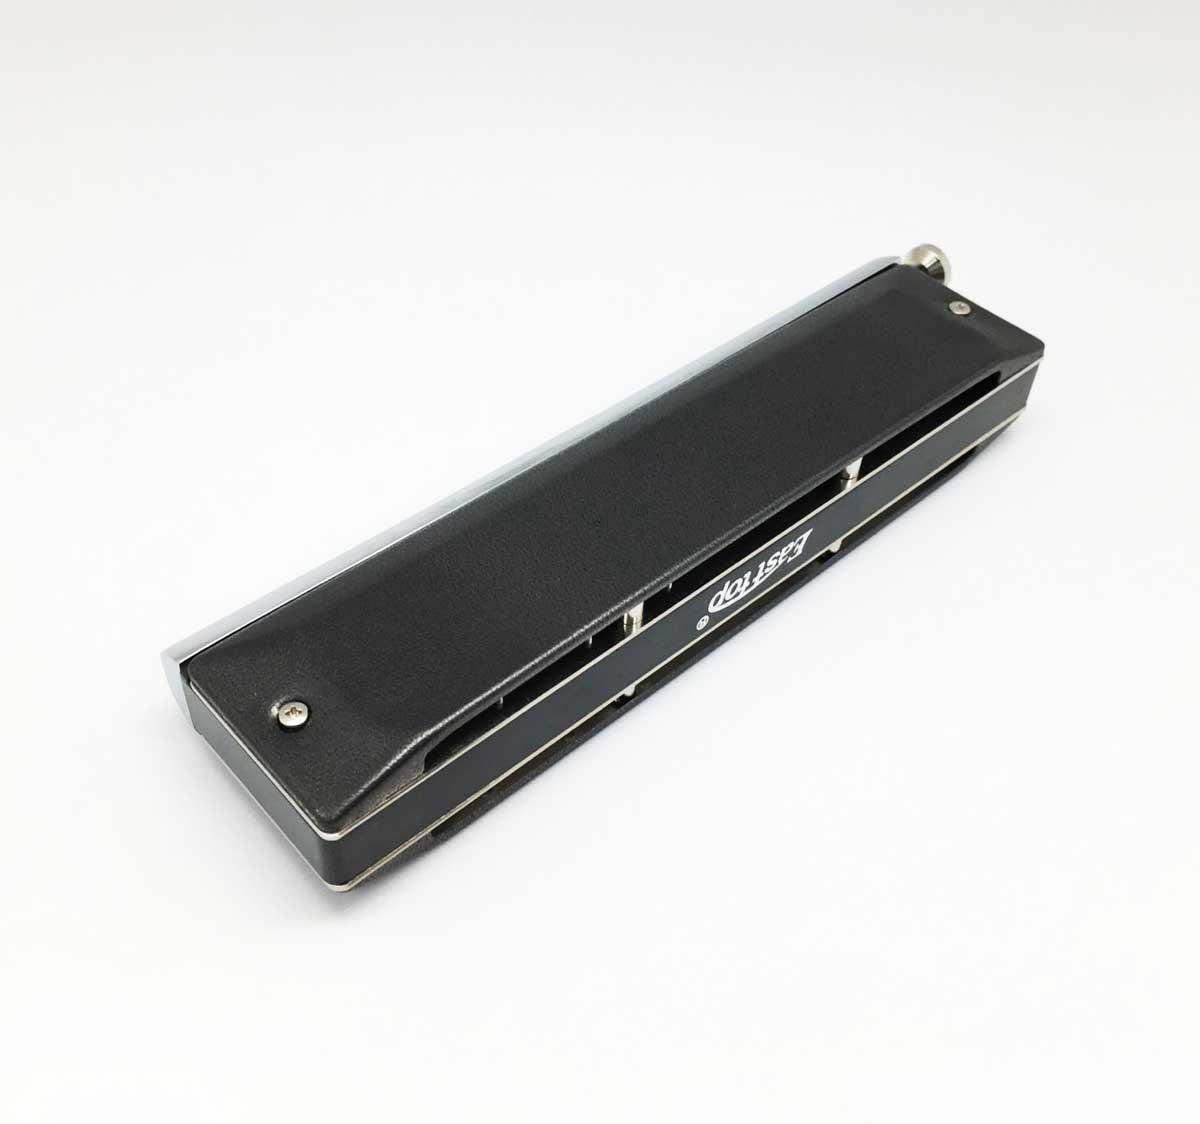 Easttop Chromatic Harmonica - EAP-16 PERFORMER - 16 hole top